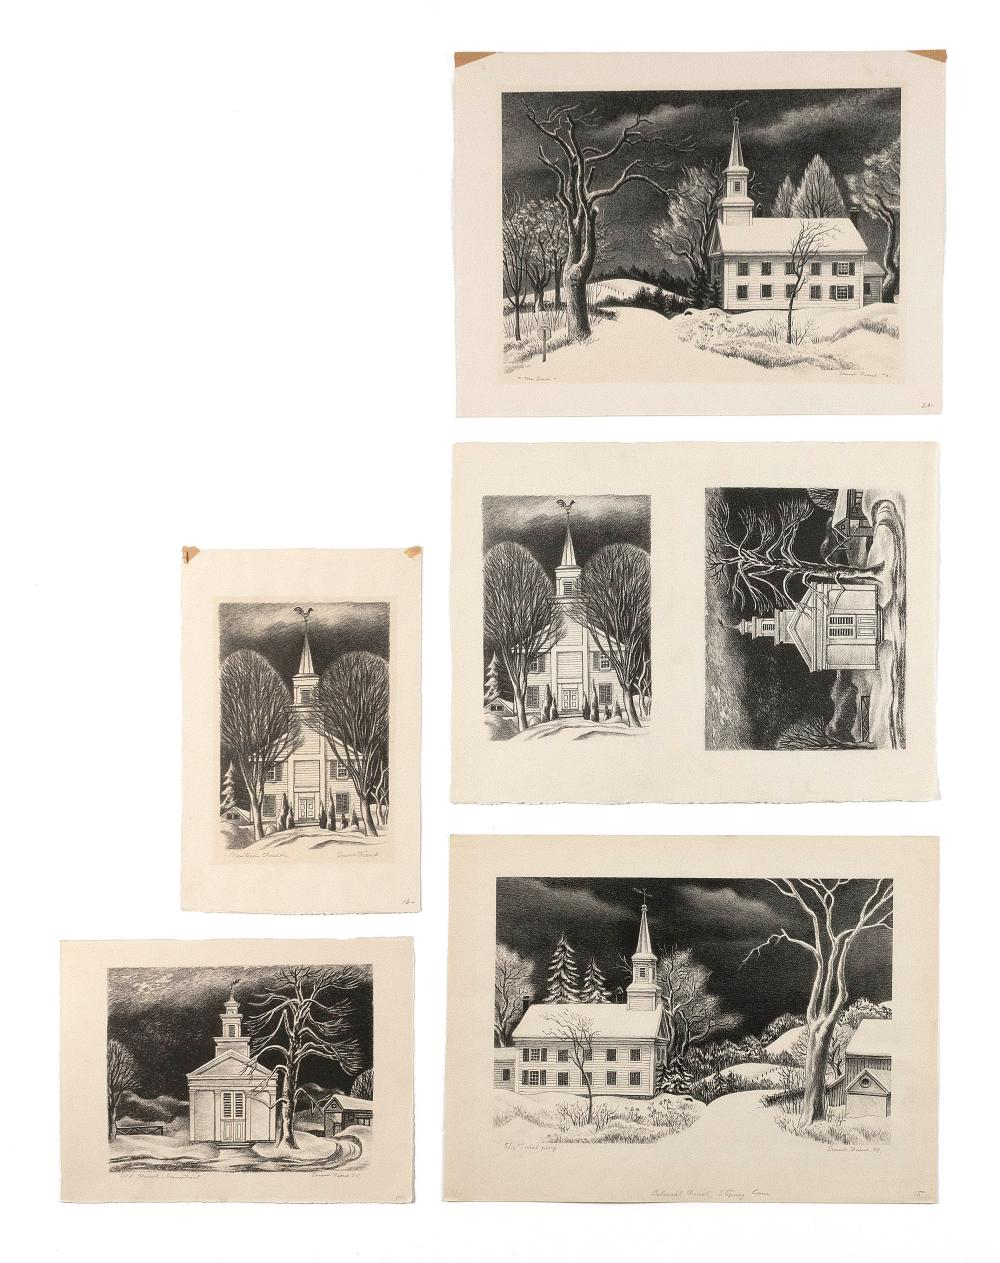 ERNEST FIENE, New York/Germany, 1894-1965, Six unframed lithographs on paper: